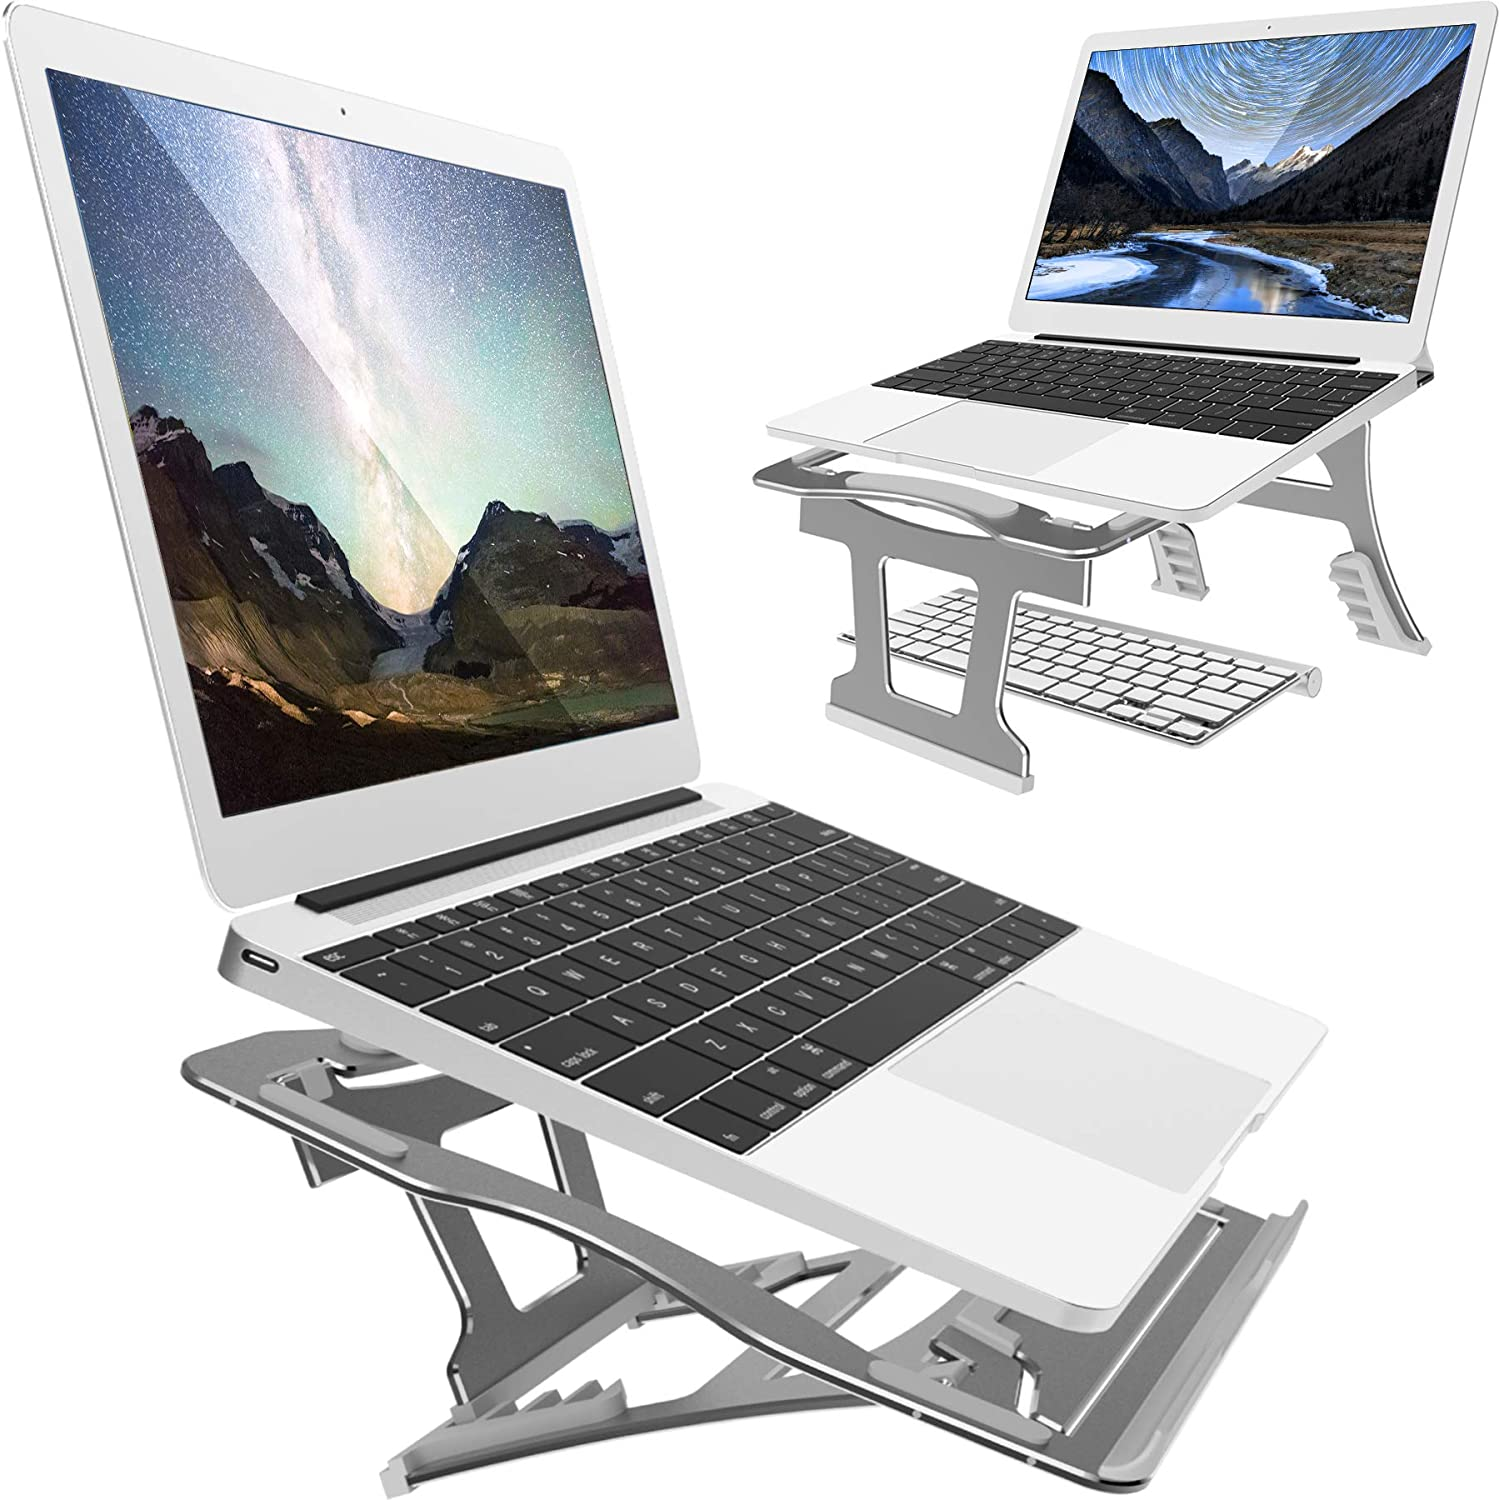 2 In 1 Adjustable Laptop Stand, 9 Angles, 3 Folding Modes. Portable Ergonomic Angled Laptop Aluminum Stand. Adjustable Height Laptop Holder with Slide-Proof Silicone for Laptop 10''~15.6''(Space Gray)